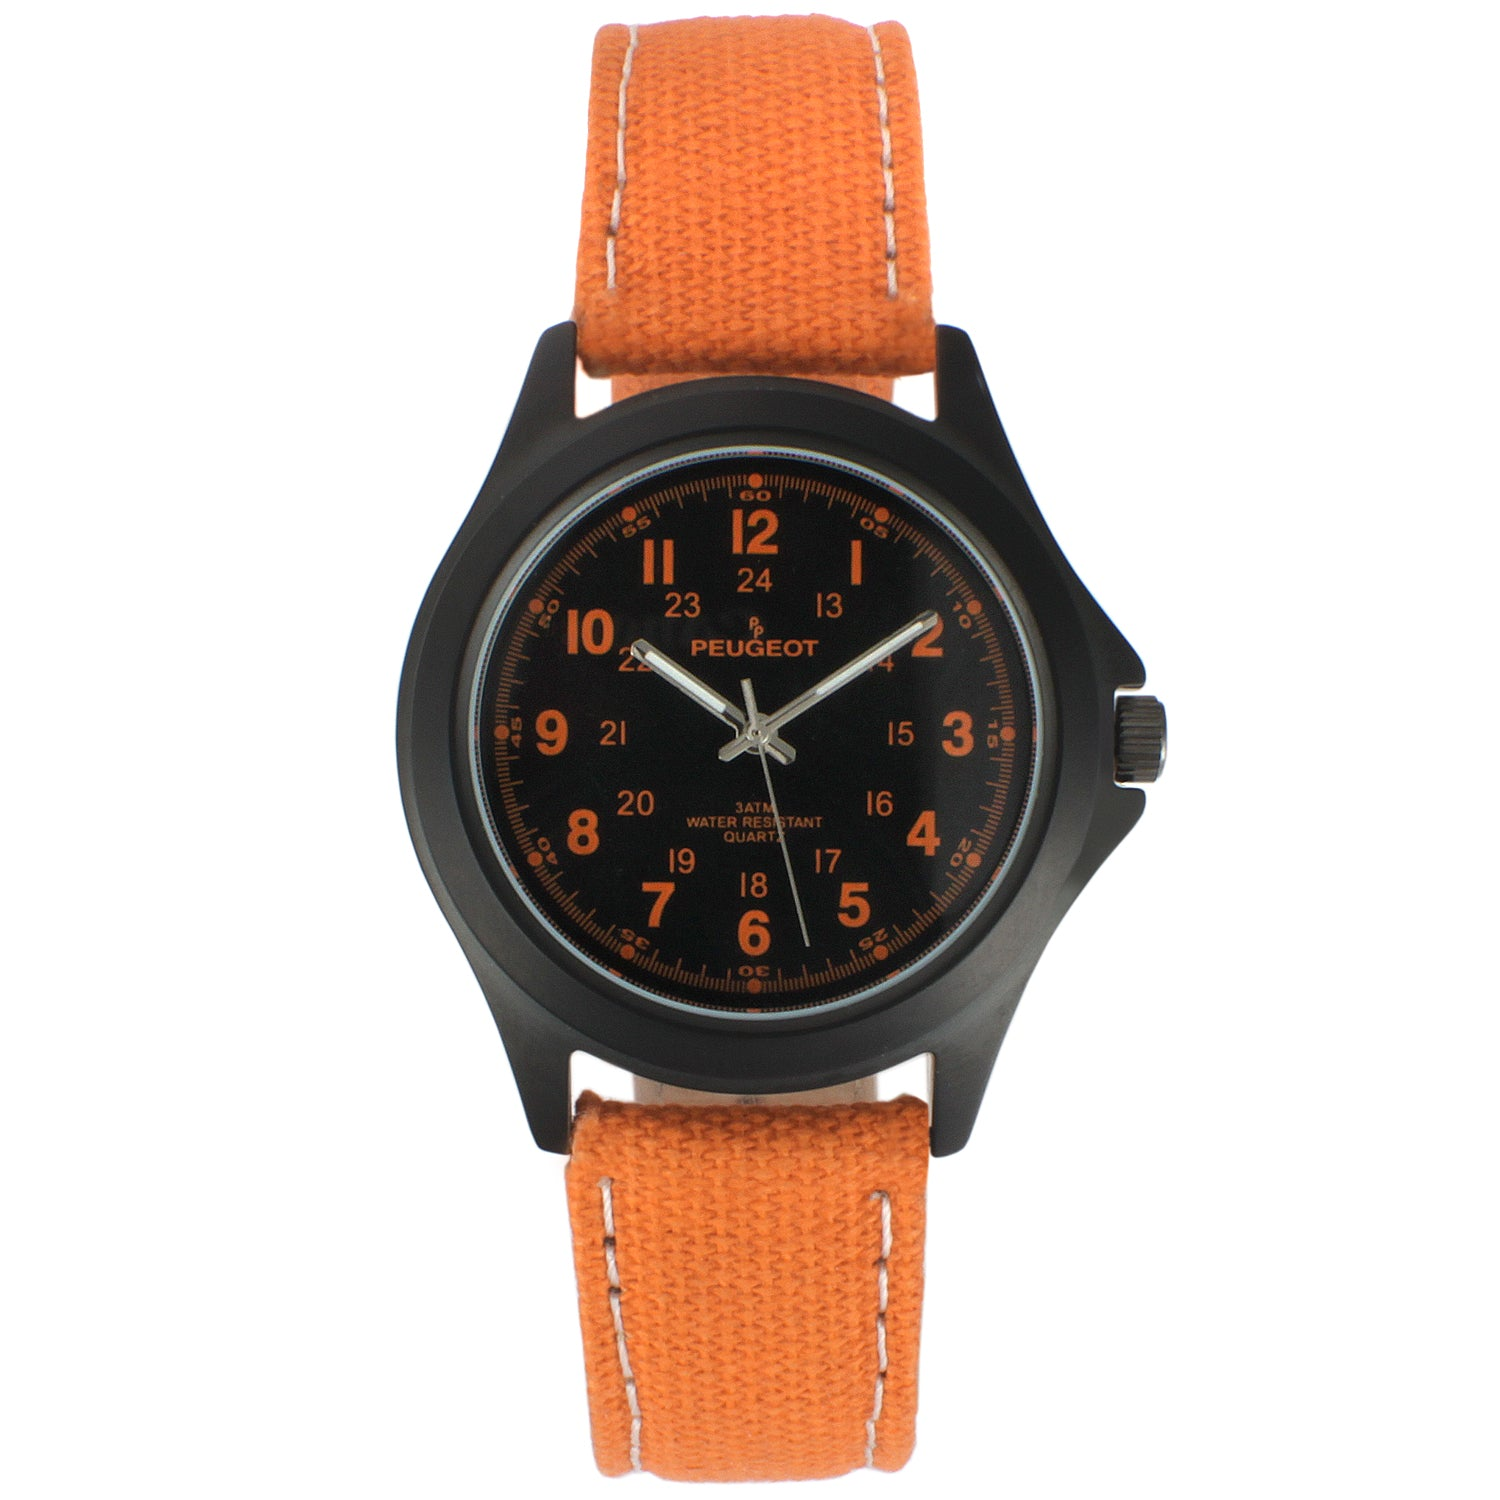 24 HR MILITARY CANVAS STRAP WATCH - ORANGE